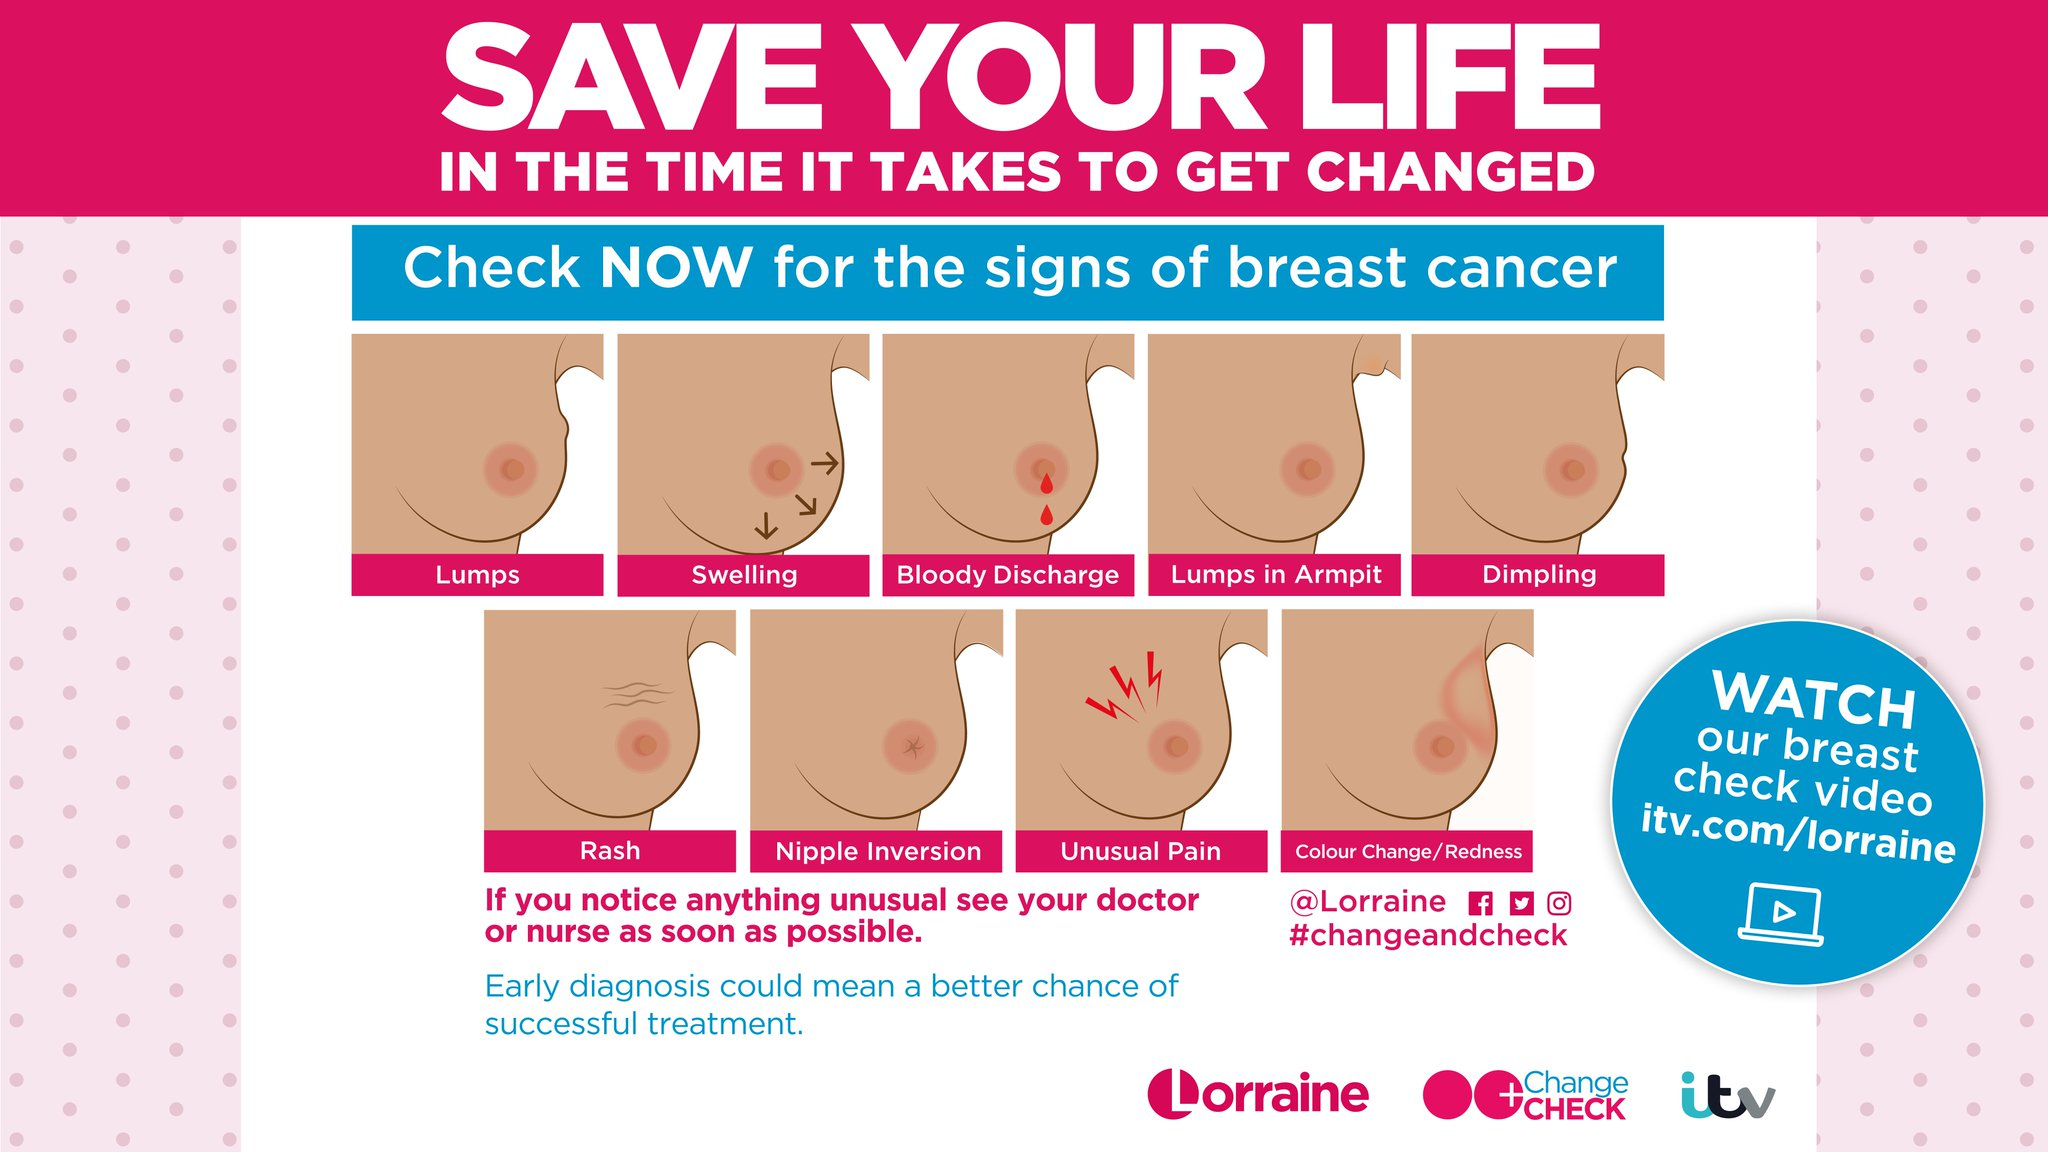 Campaign Launched To Check For Signs Of Breast Cancer In Changing